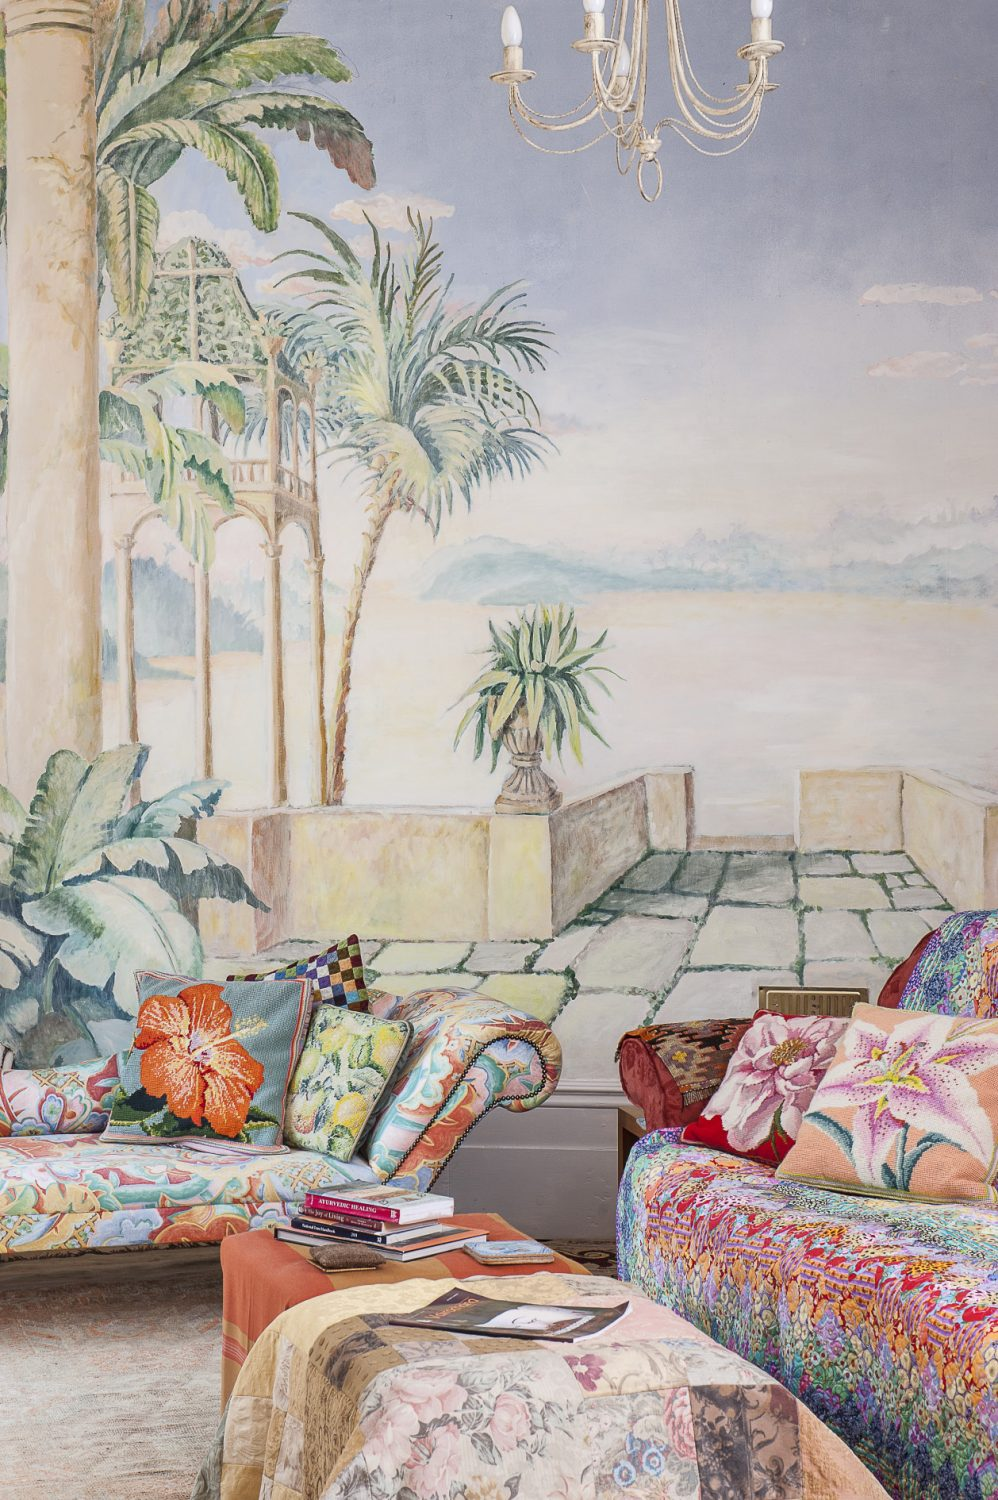 A plethora of needlepoint cushions with images of lilies, hibiscus and peonies, all worked by Kaffe, are scattered along the sofa and adjacent chaise longue